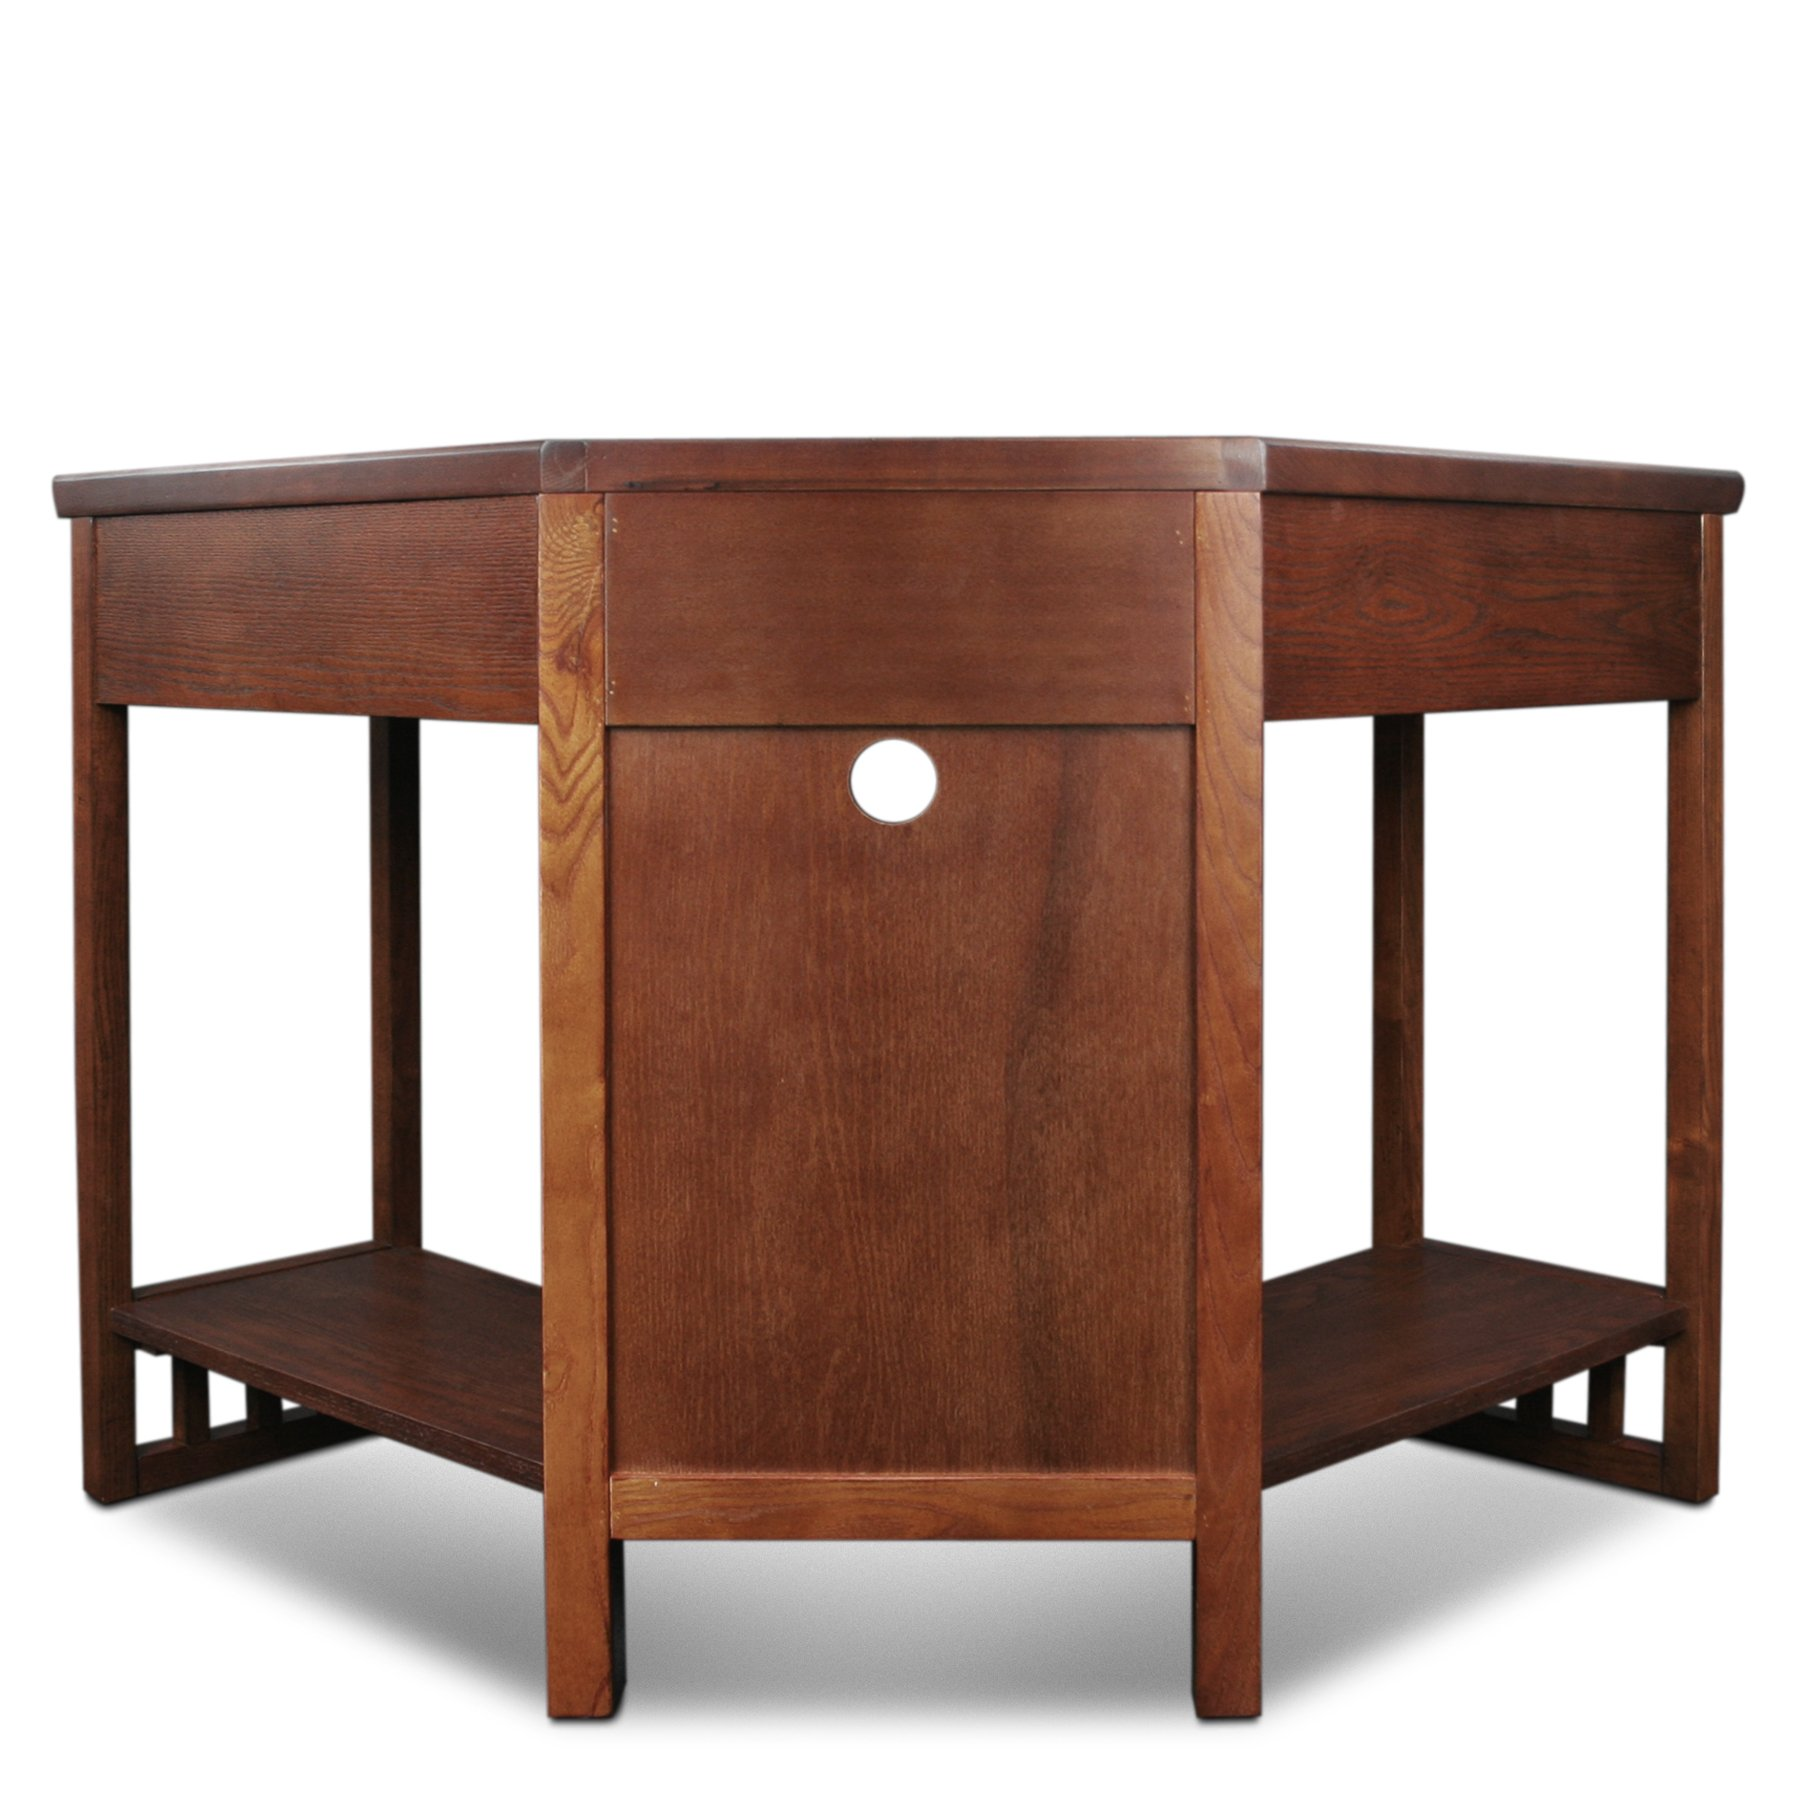 Leick Corner Computer and Writing Desk, Mission Oak Finish by Leick Furniture (Image #2)